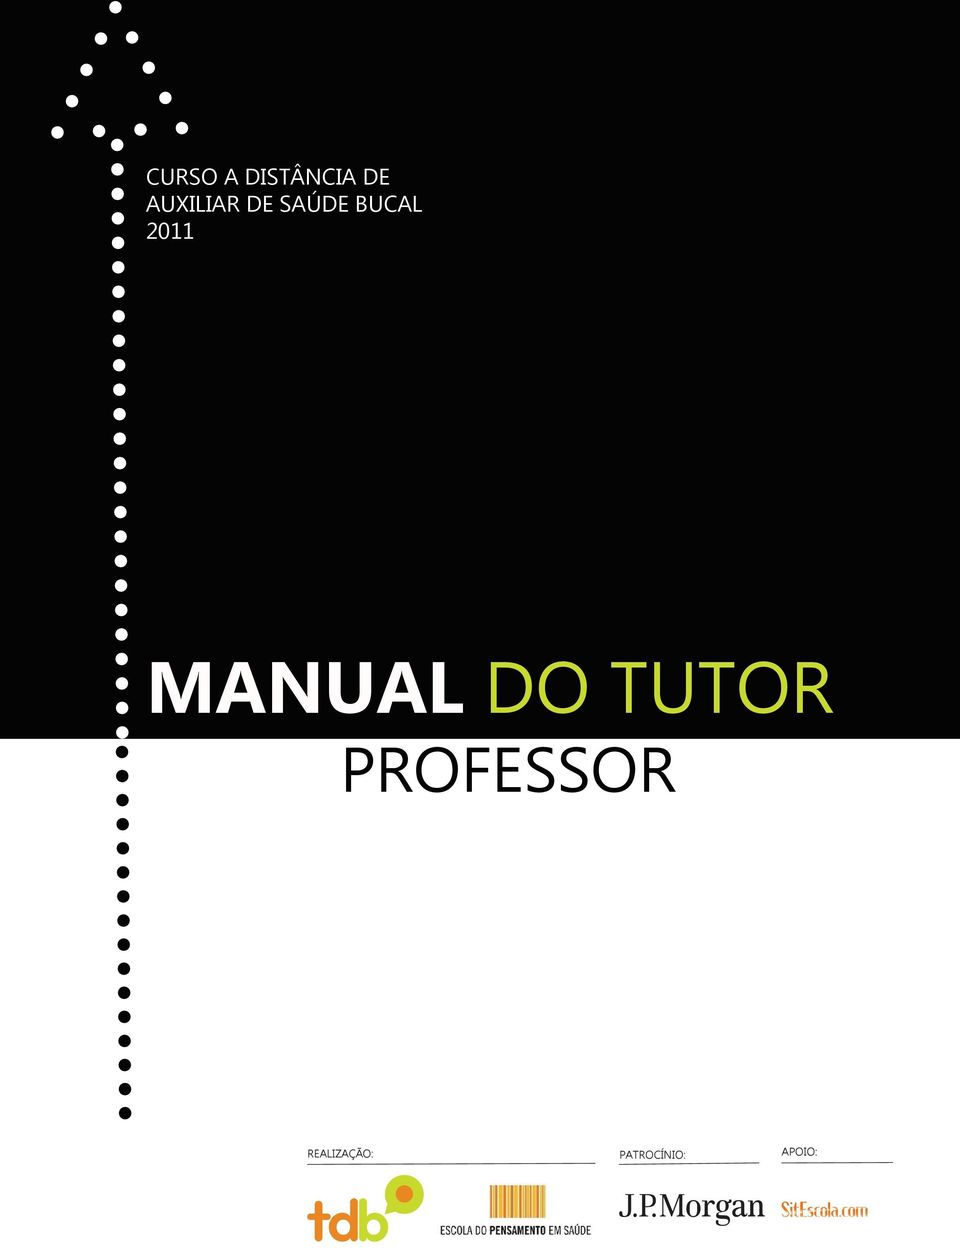 2011 MANUAL DO TUTOR